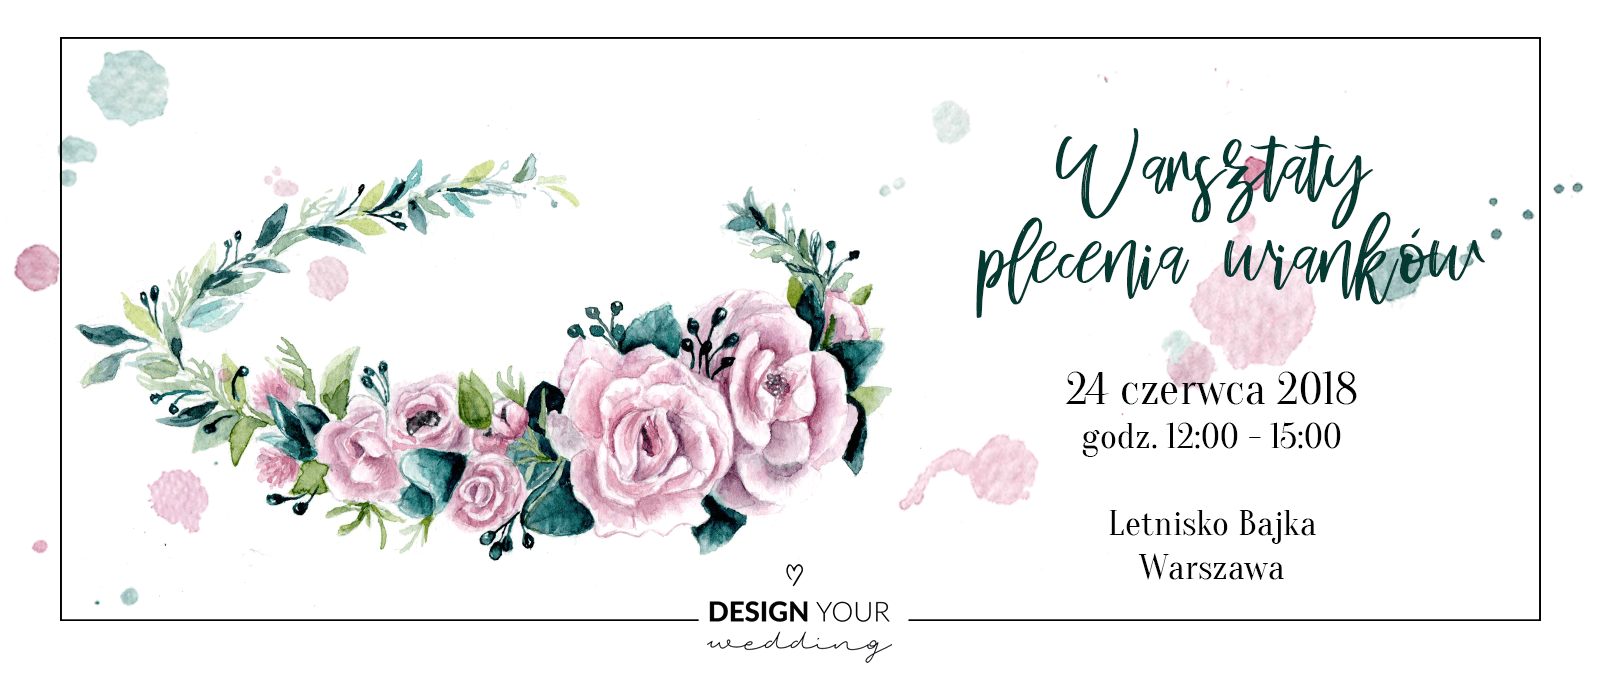 Warsztaty z plecenia winkow _ Design Your Wedding _ 1600x700